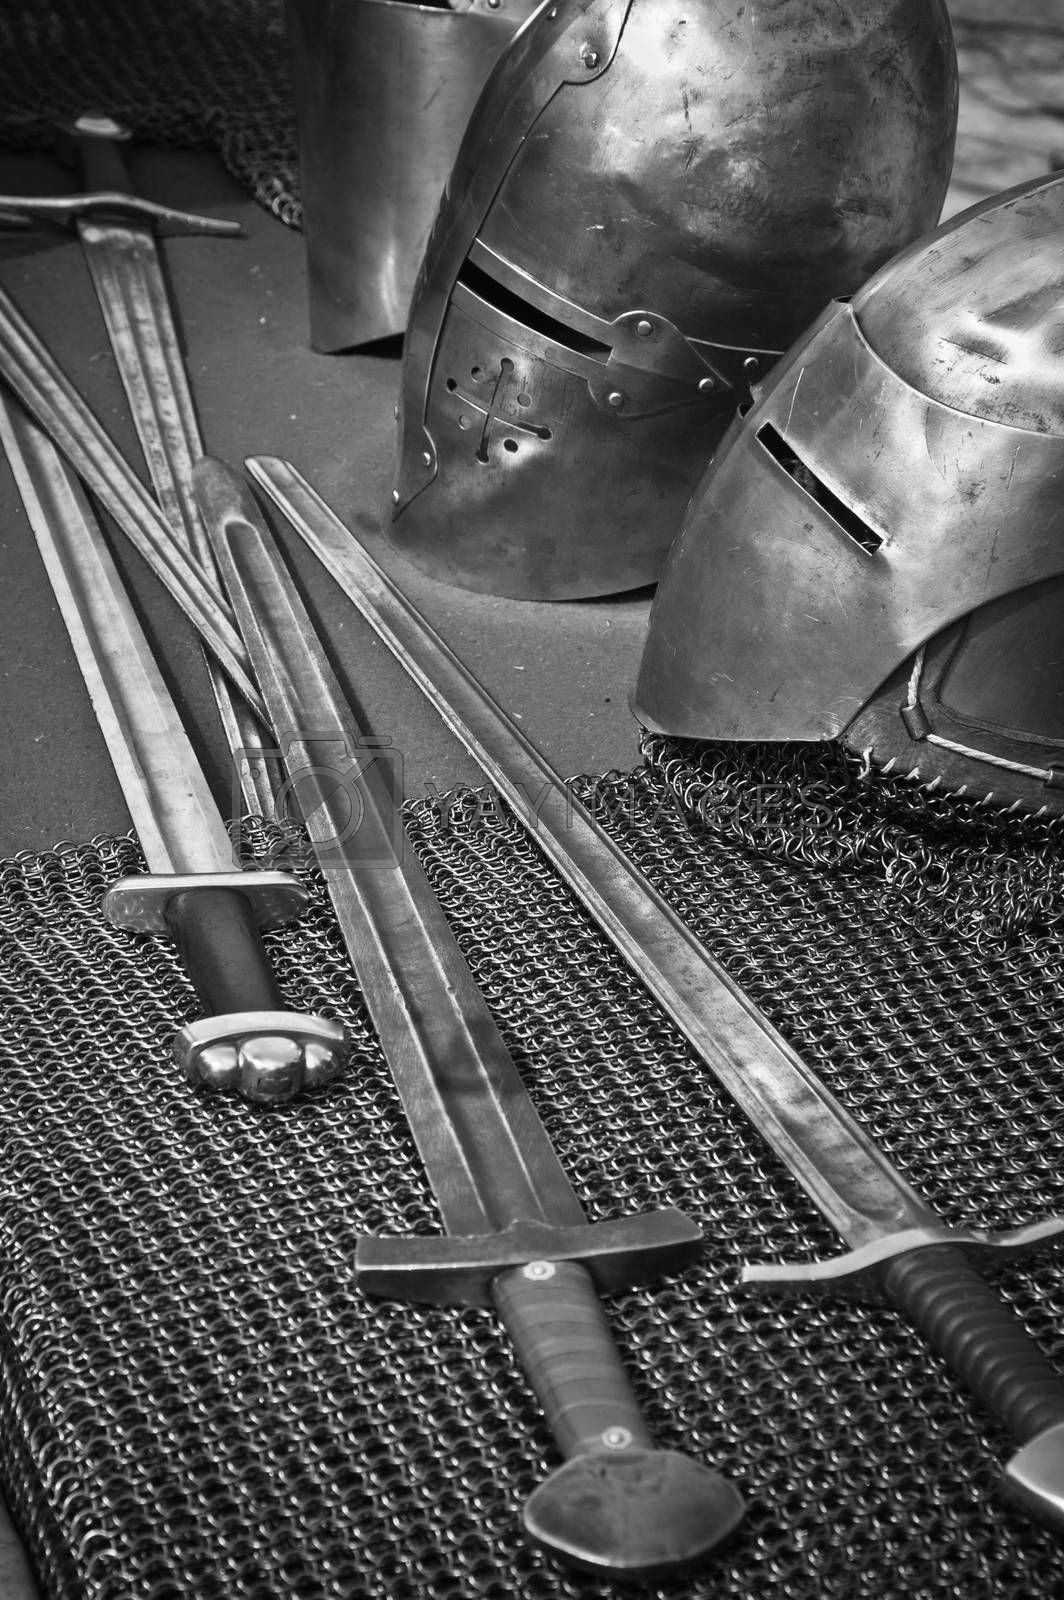 The knightly weapon and armour